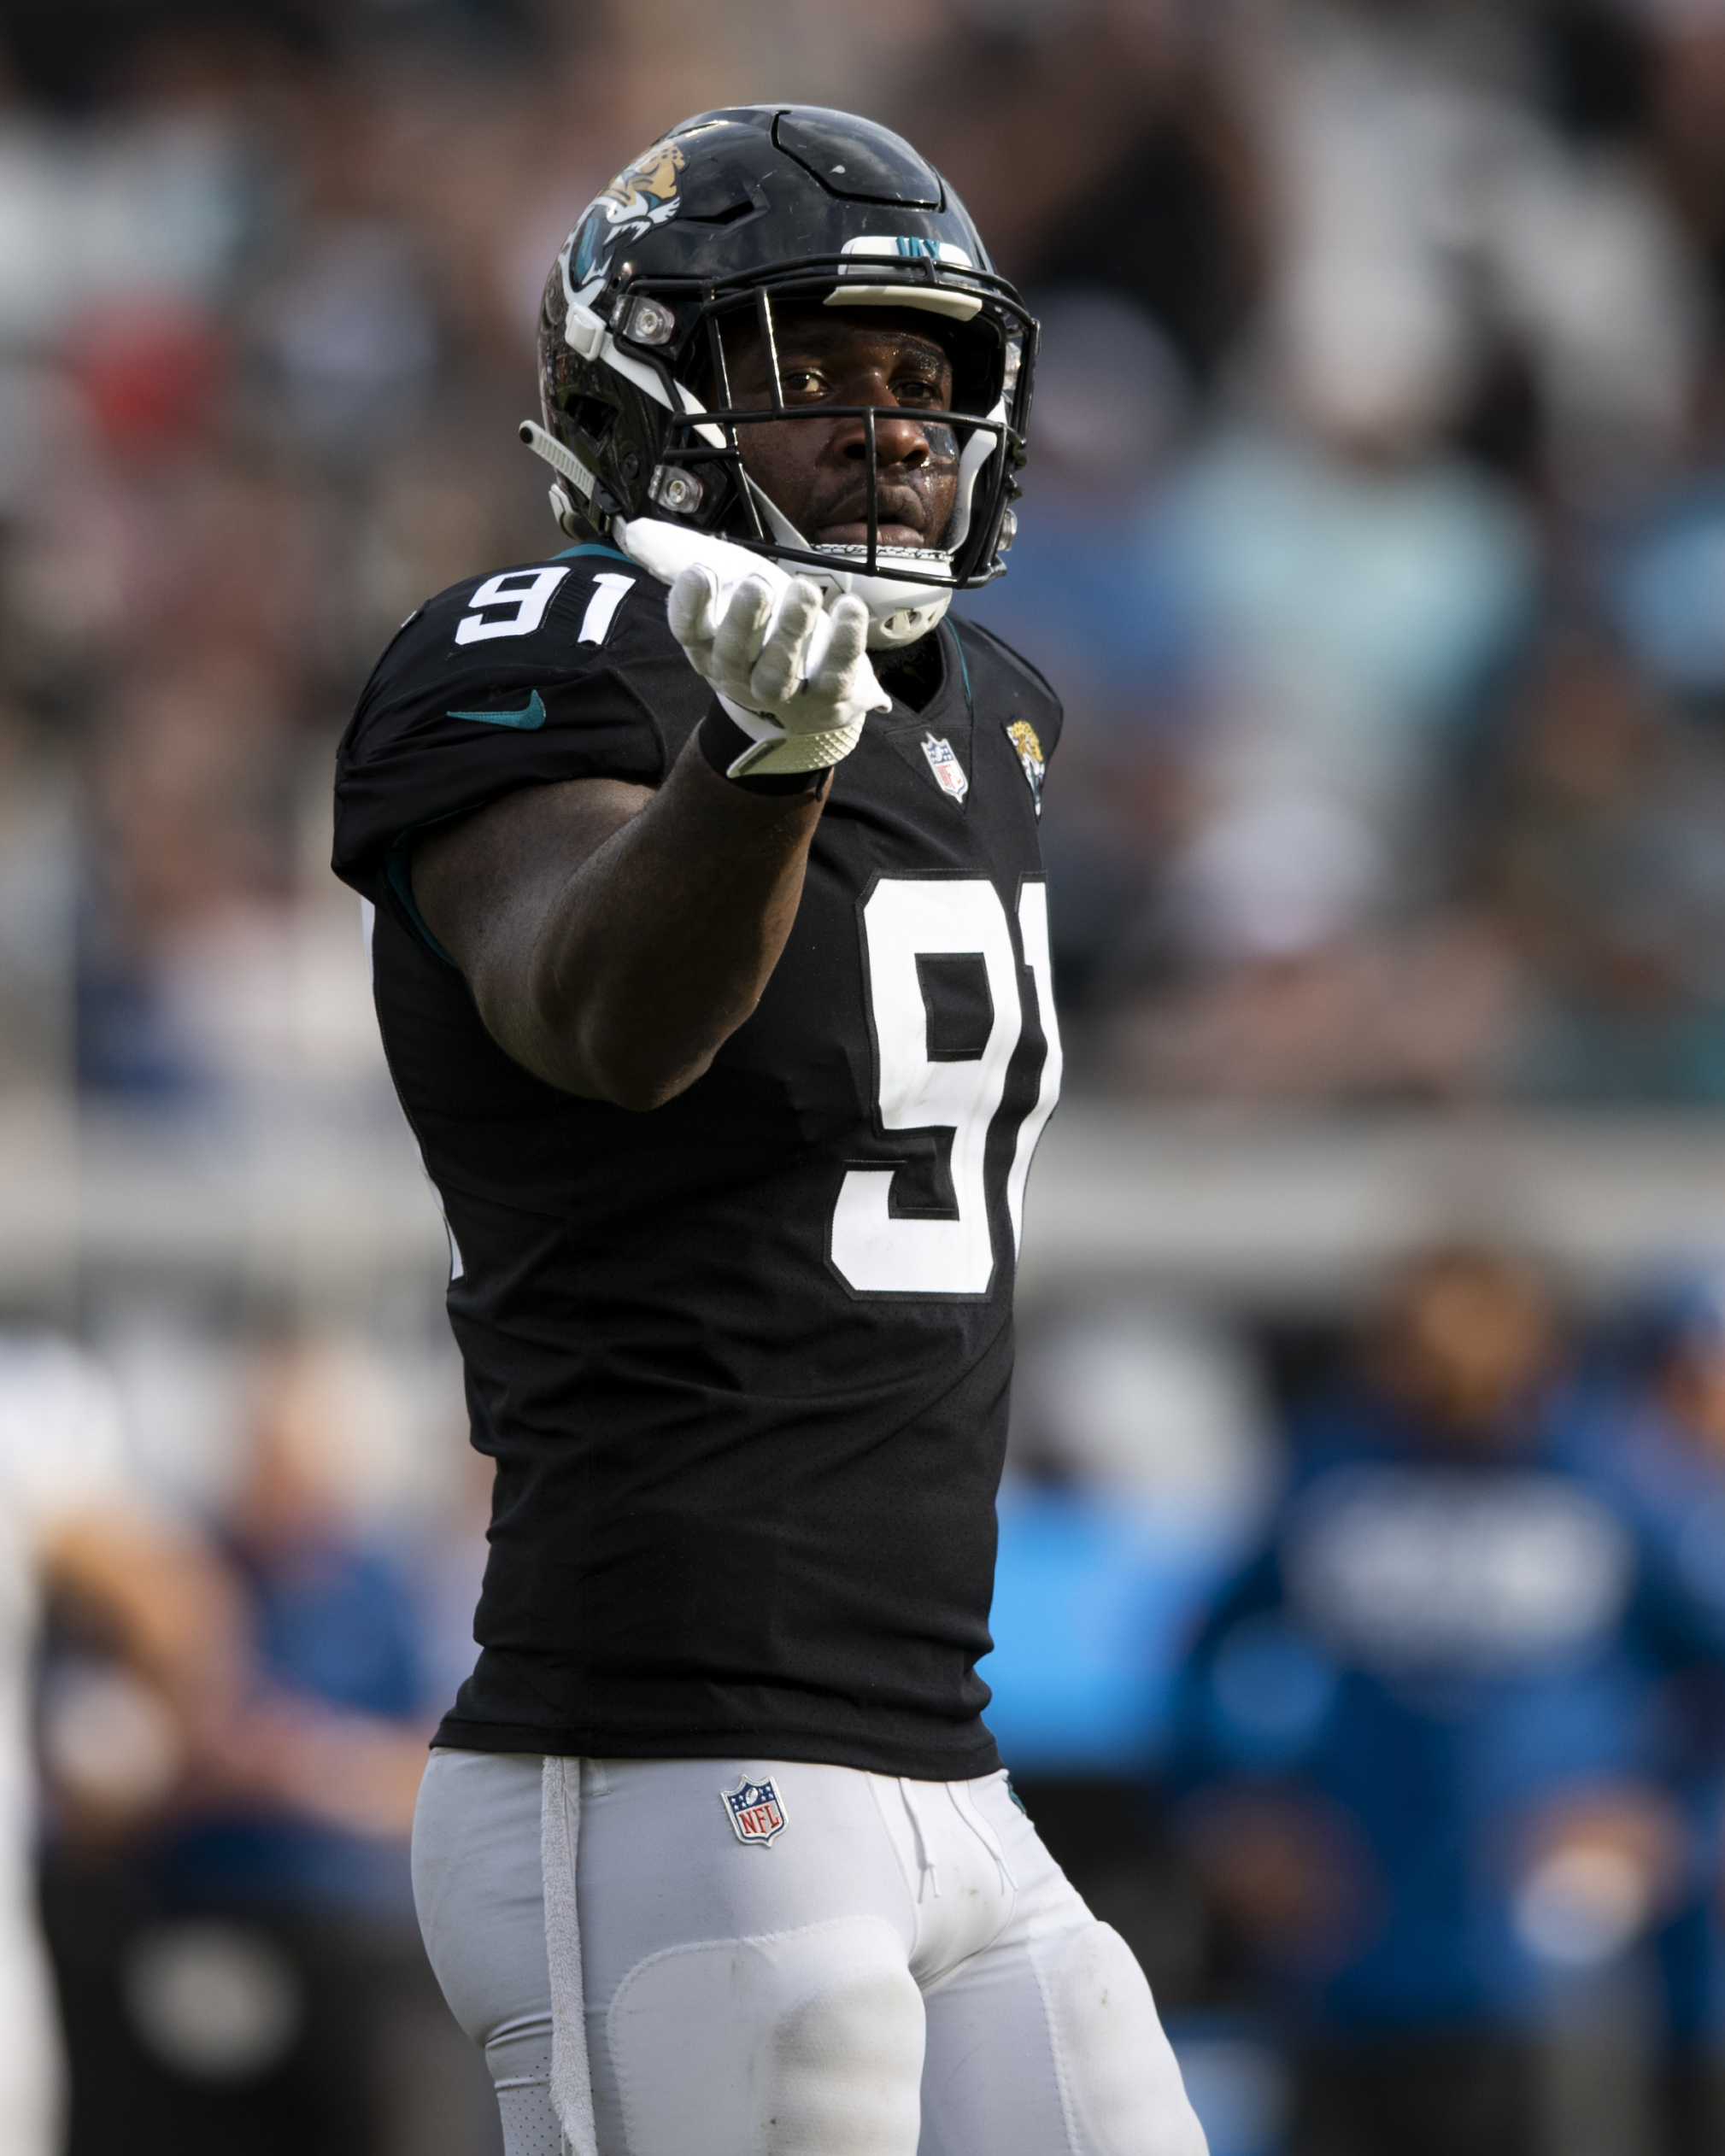 402f4b4c649 The Jaguars will not have Yannick Ngakoue as they begin their mandatory  minicamp. On Monday, the defensive end announced that he will stay at home  in hopes ...